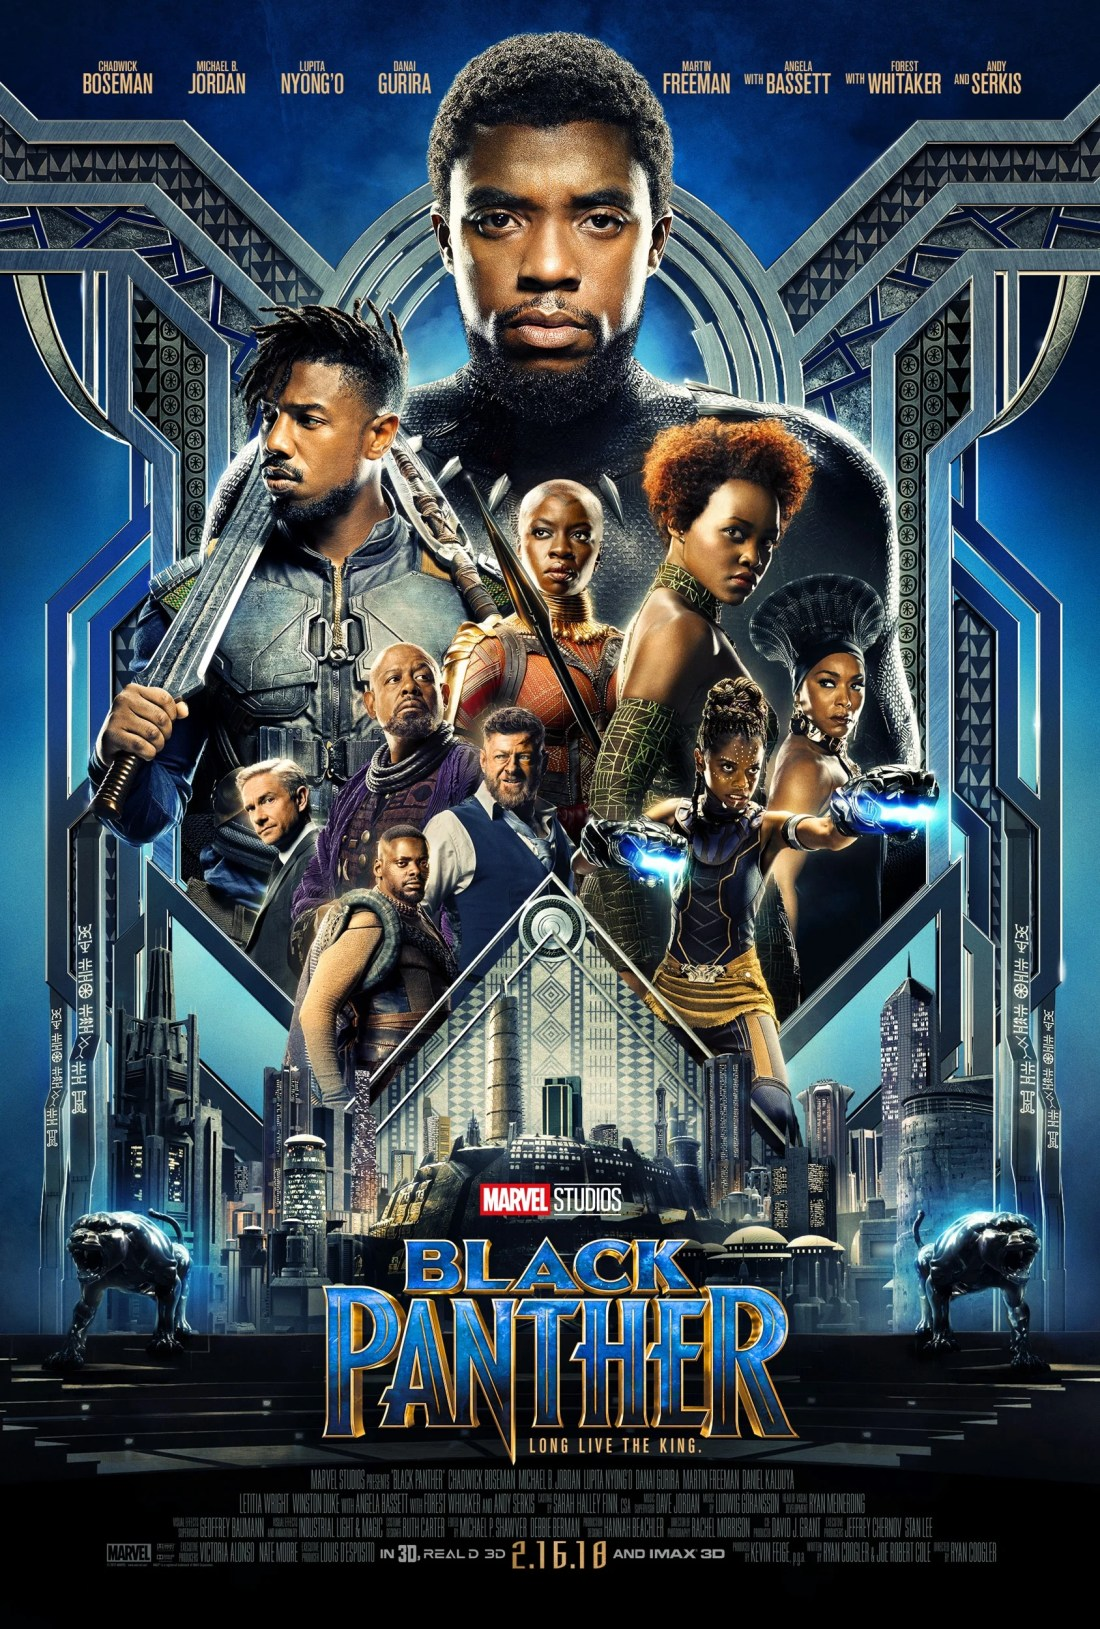 Black Panther Movie Poster for one of Marvel Studios Newest films. Hits theaters Febuary 16th, 2018.